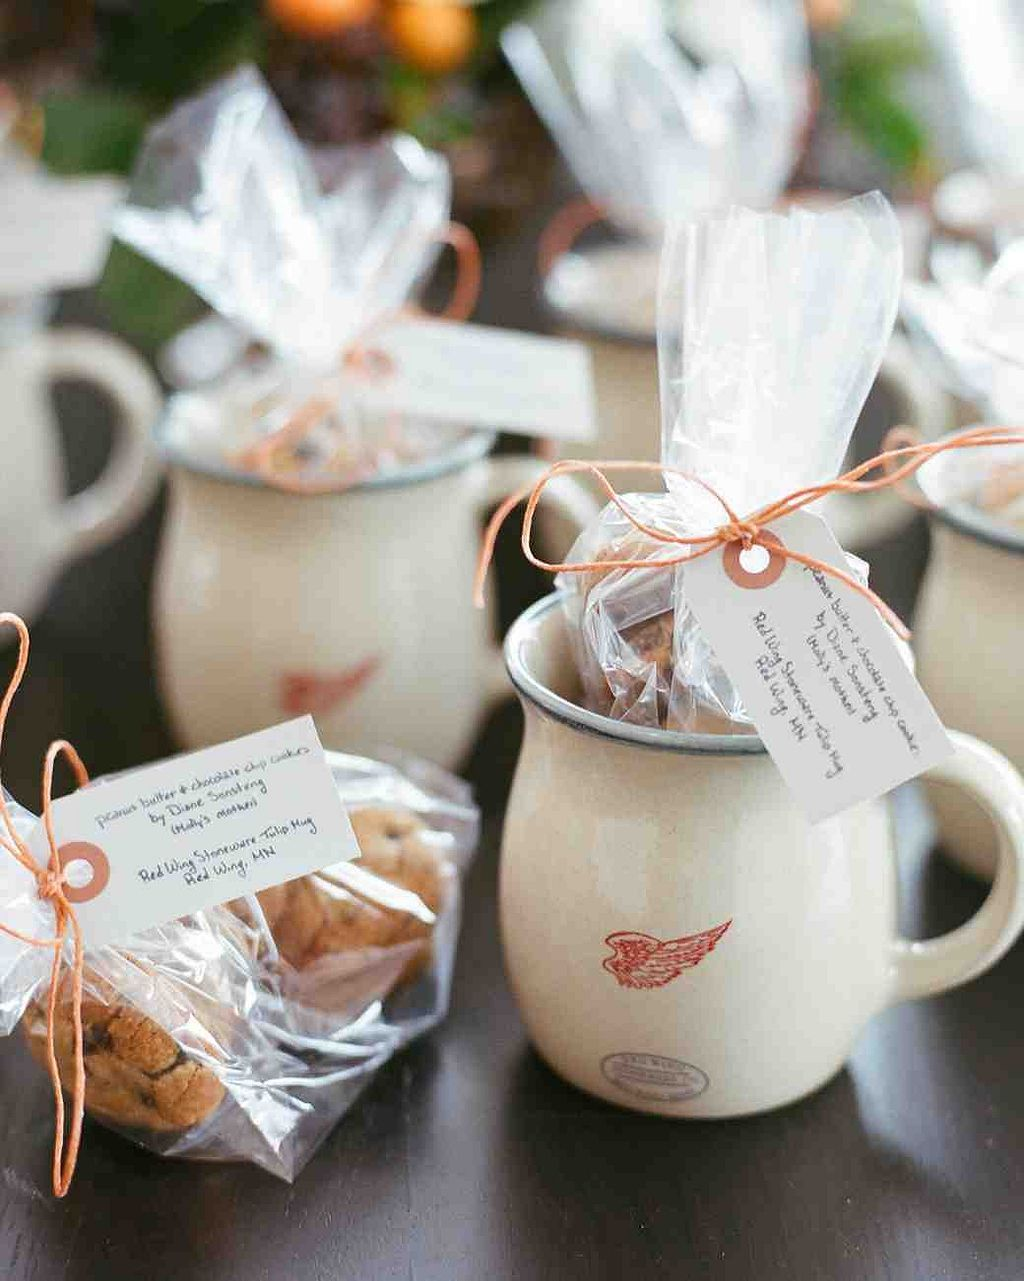 70+ Creative Wedding Favors Ideas | Creative wedding favors, Favors ...